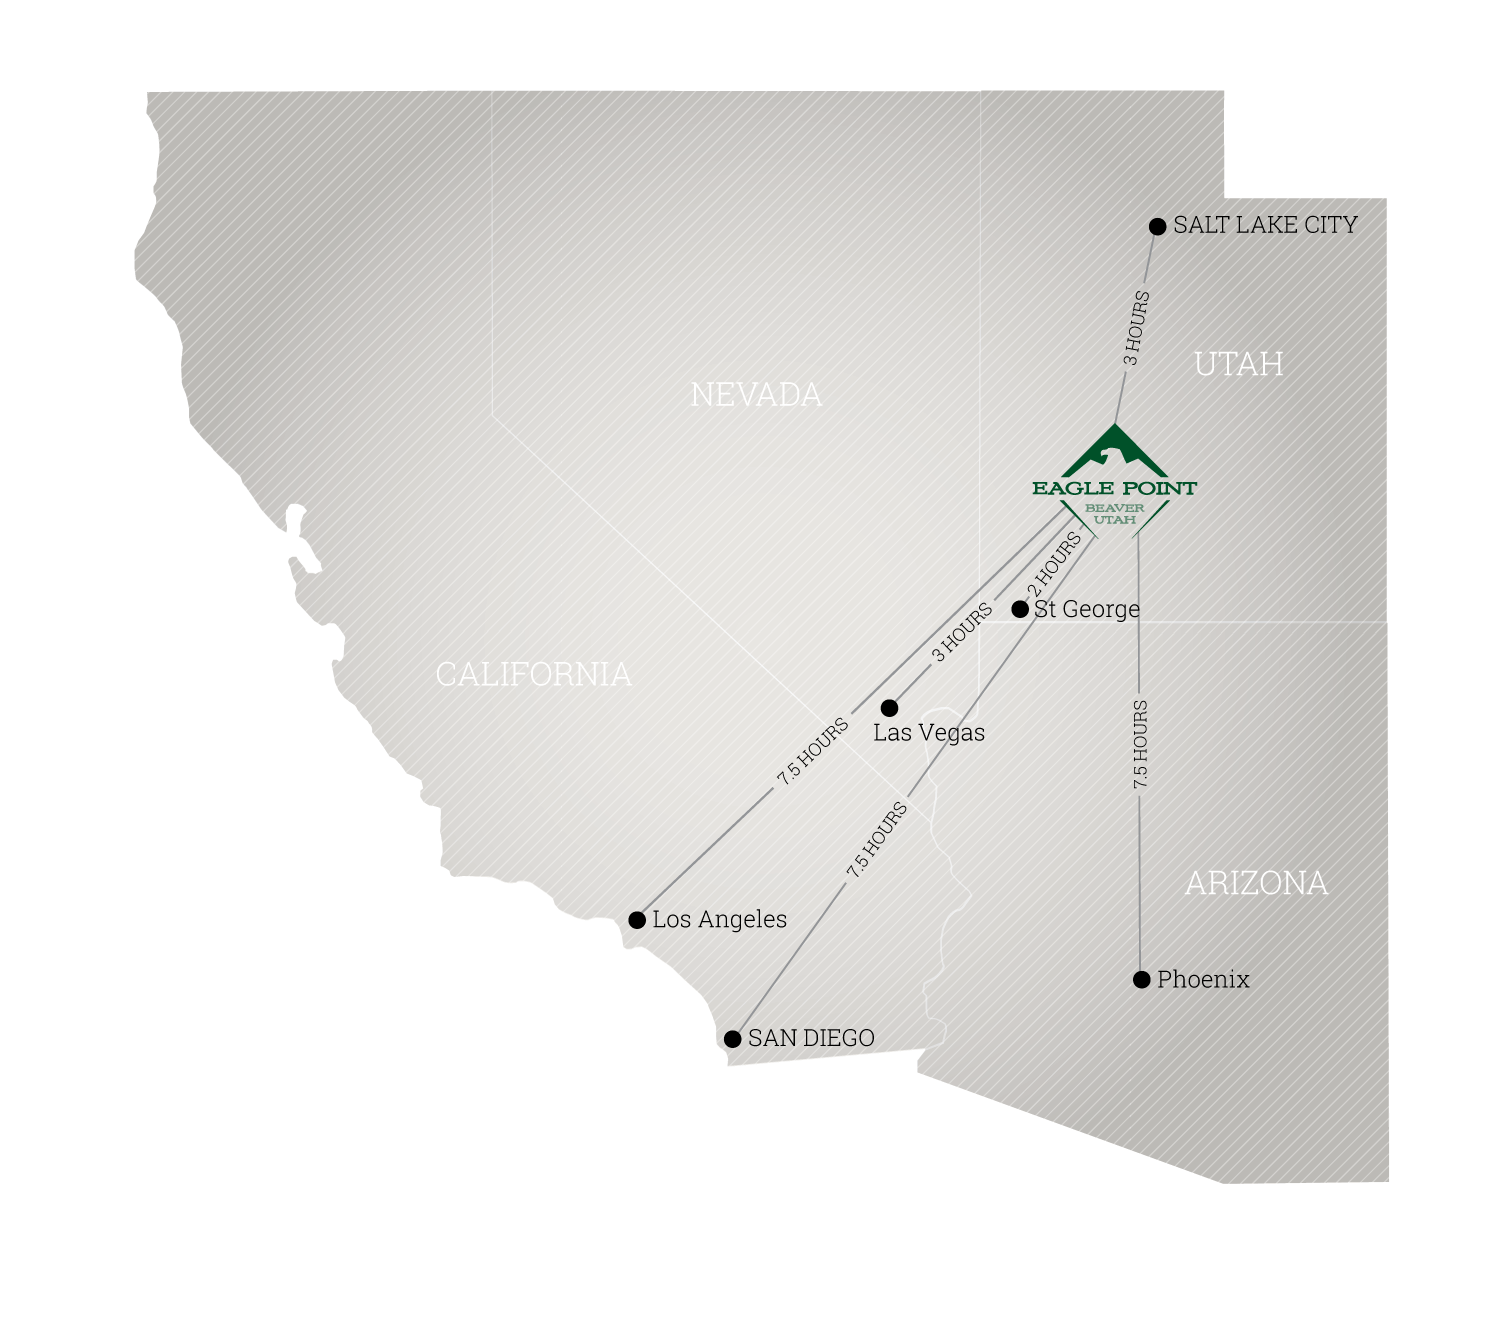 Salt Lake City to Eagle Point: 3 Hours | Los Angeles to Eagle Point: 7.5 Hours | San Diego to Eagle Point: 7.5 Hours | Las Vegas to Eagle Point: 3 Hours | Phoenix to Eagle Point: 7.5 Hours